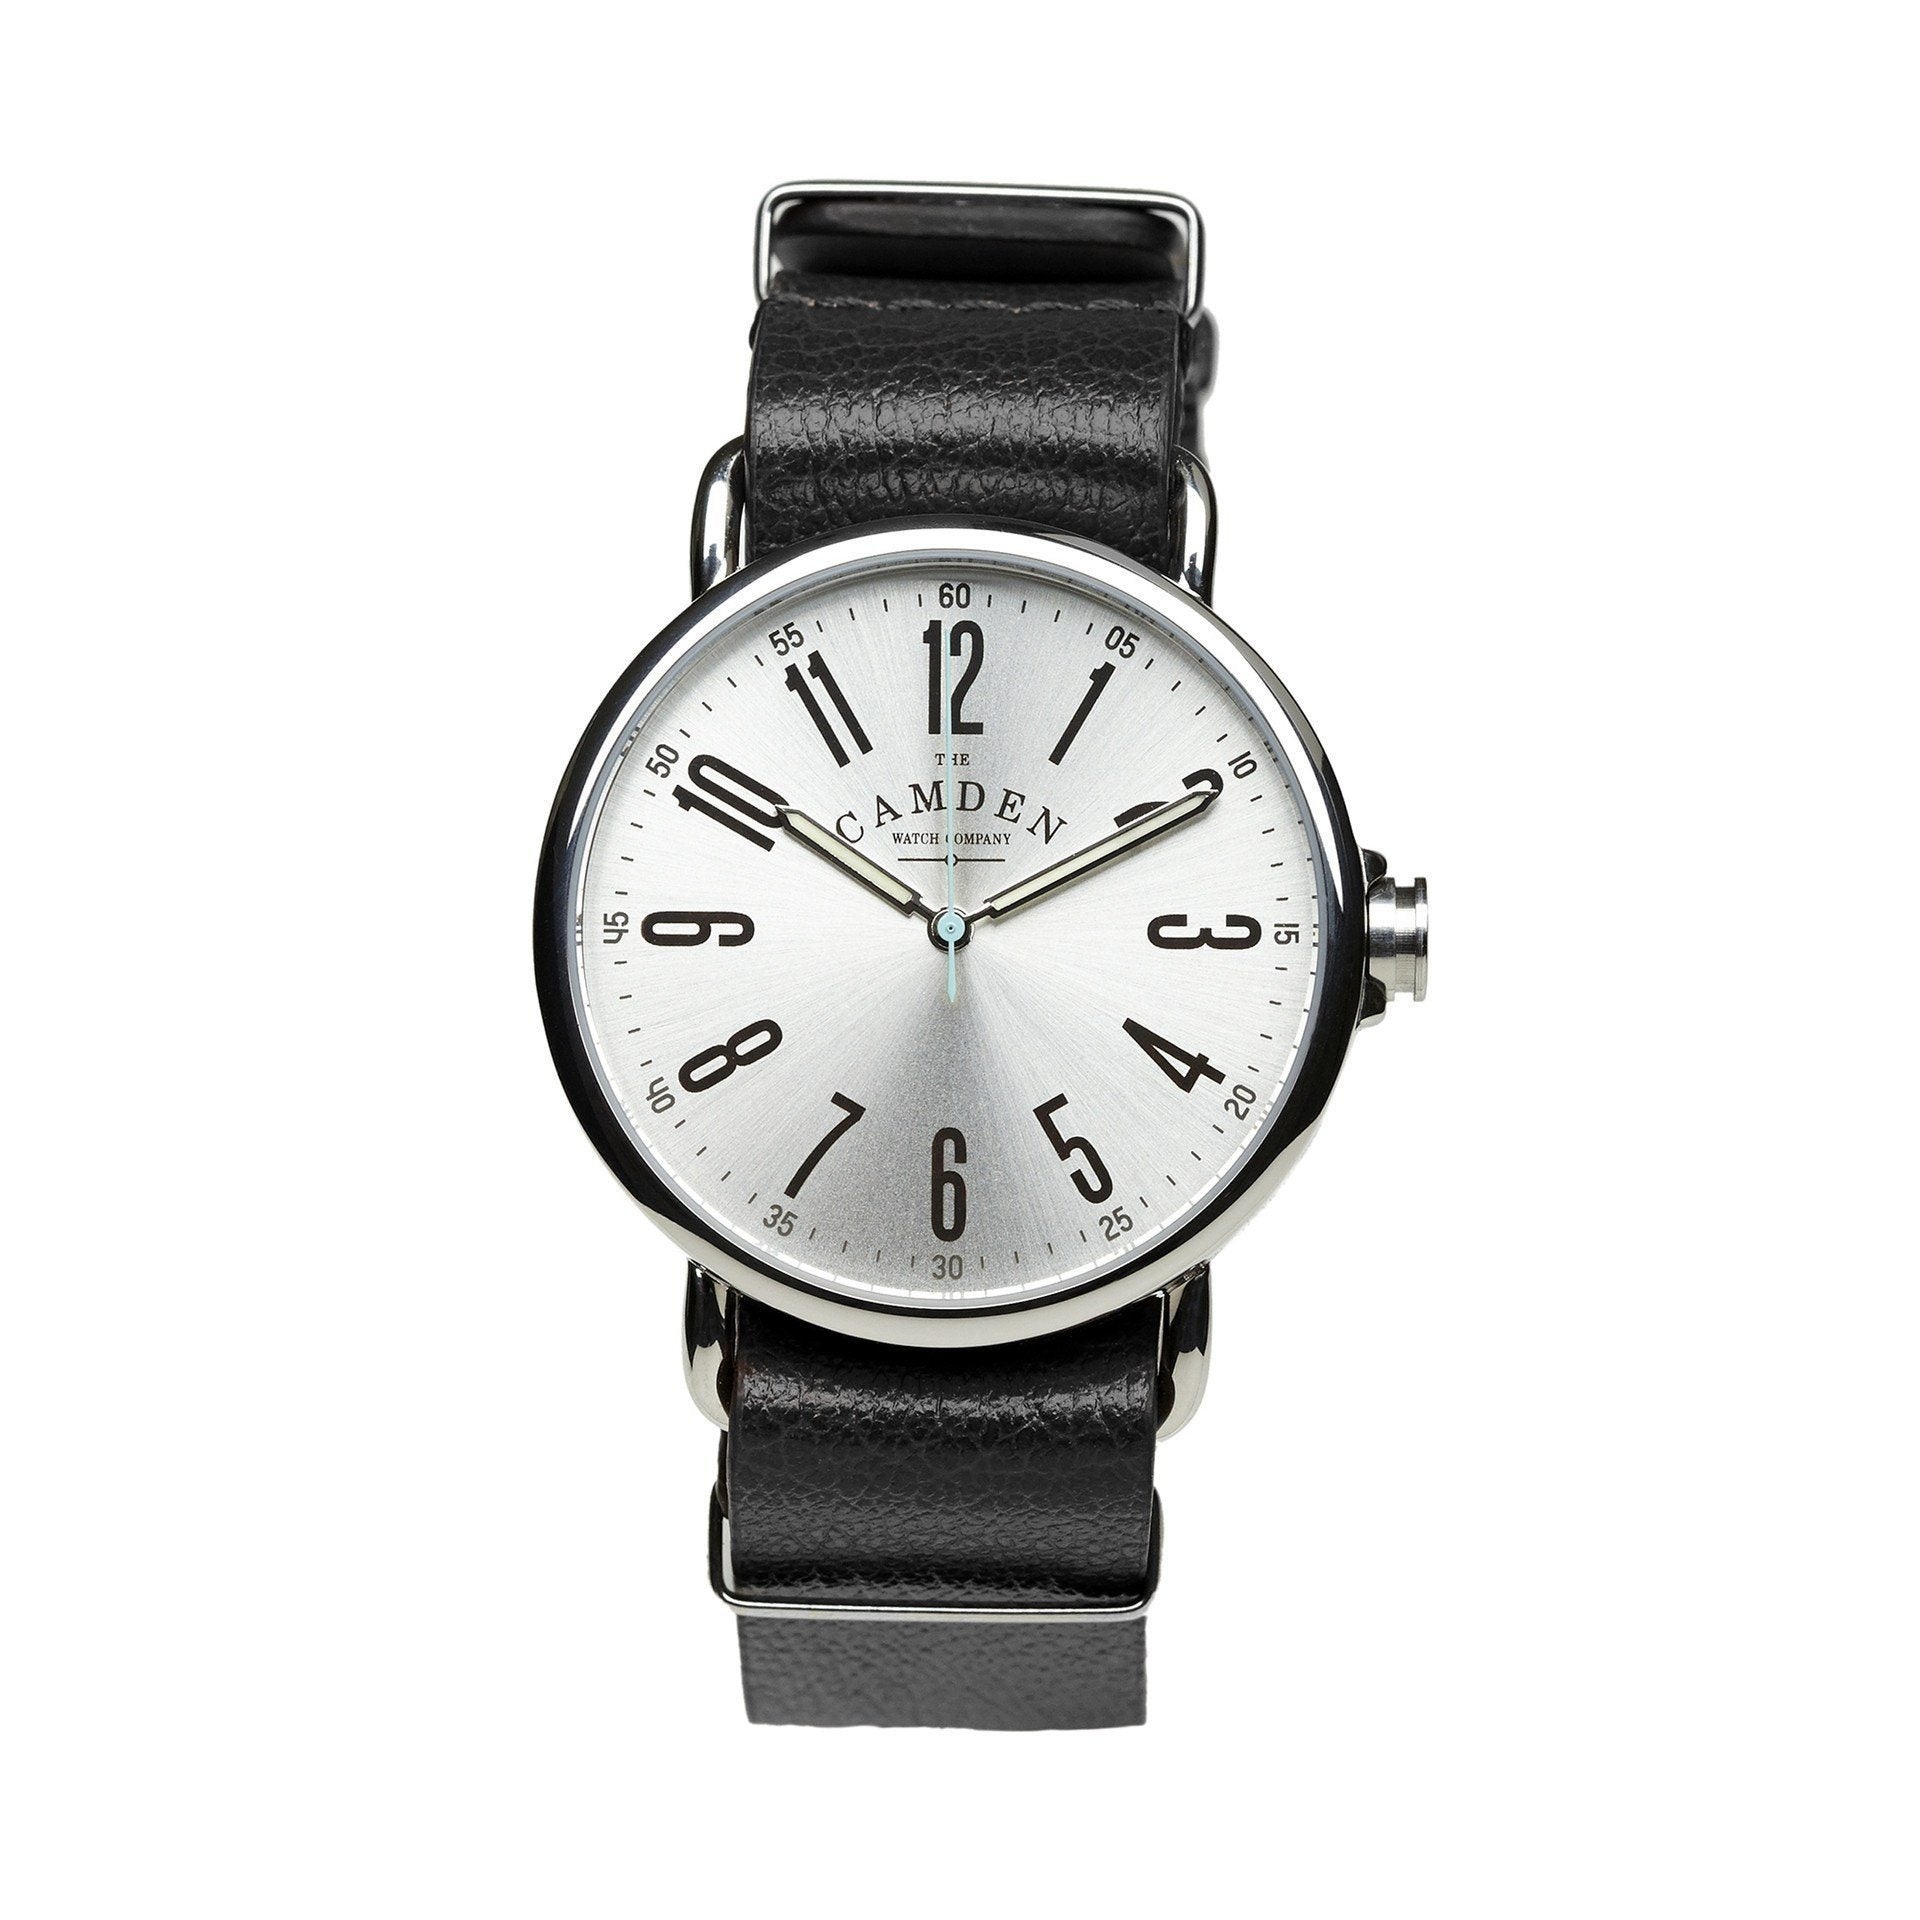 All Watches The Camden Watch Company